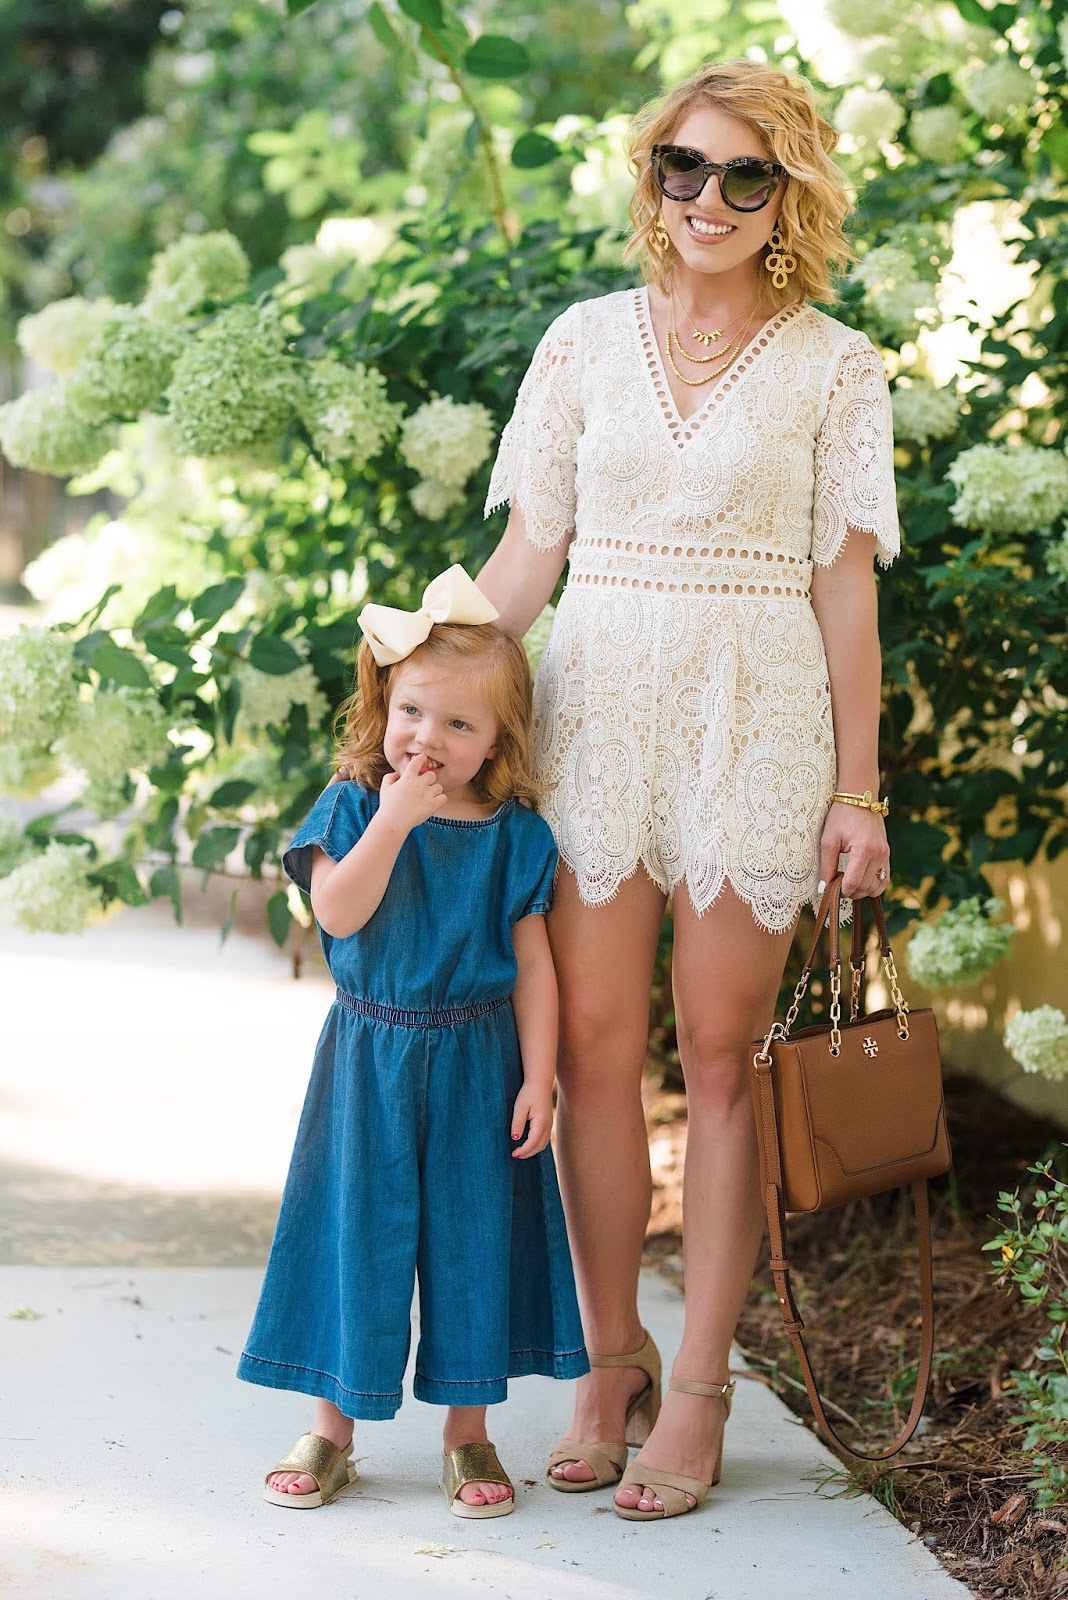 Nordstrom Anniversary Sale Mommy and Me Looks: Lace Romper and Denim Jumpsuit - Something Delightful